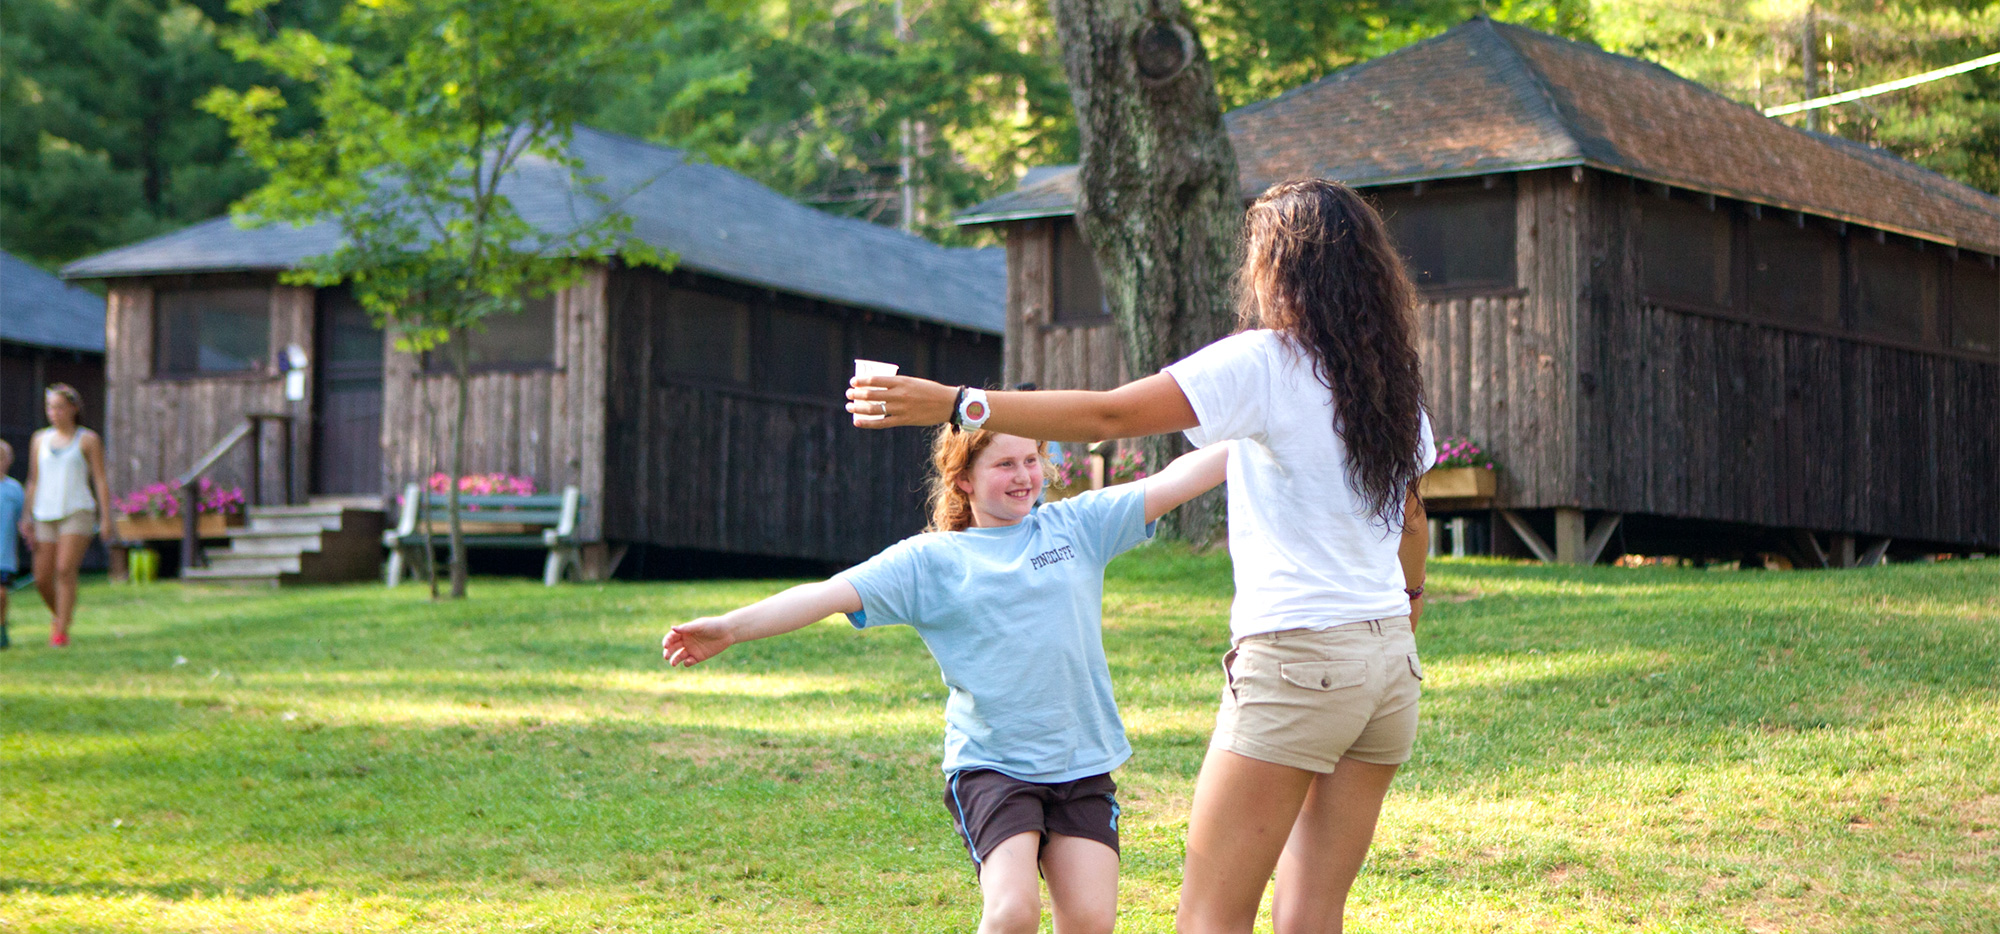 pinecliffe women Amazing work opportunity with incredible supervision and internship supervision camp pinecliffe, founded in 1917, is a full season private summer camp for girls, ages 7 to 15.